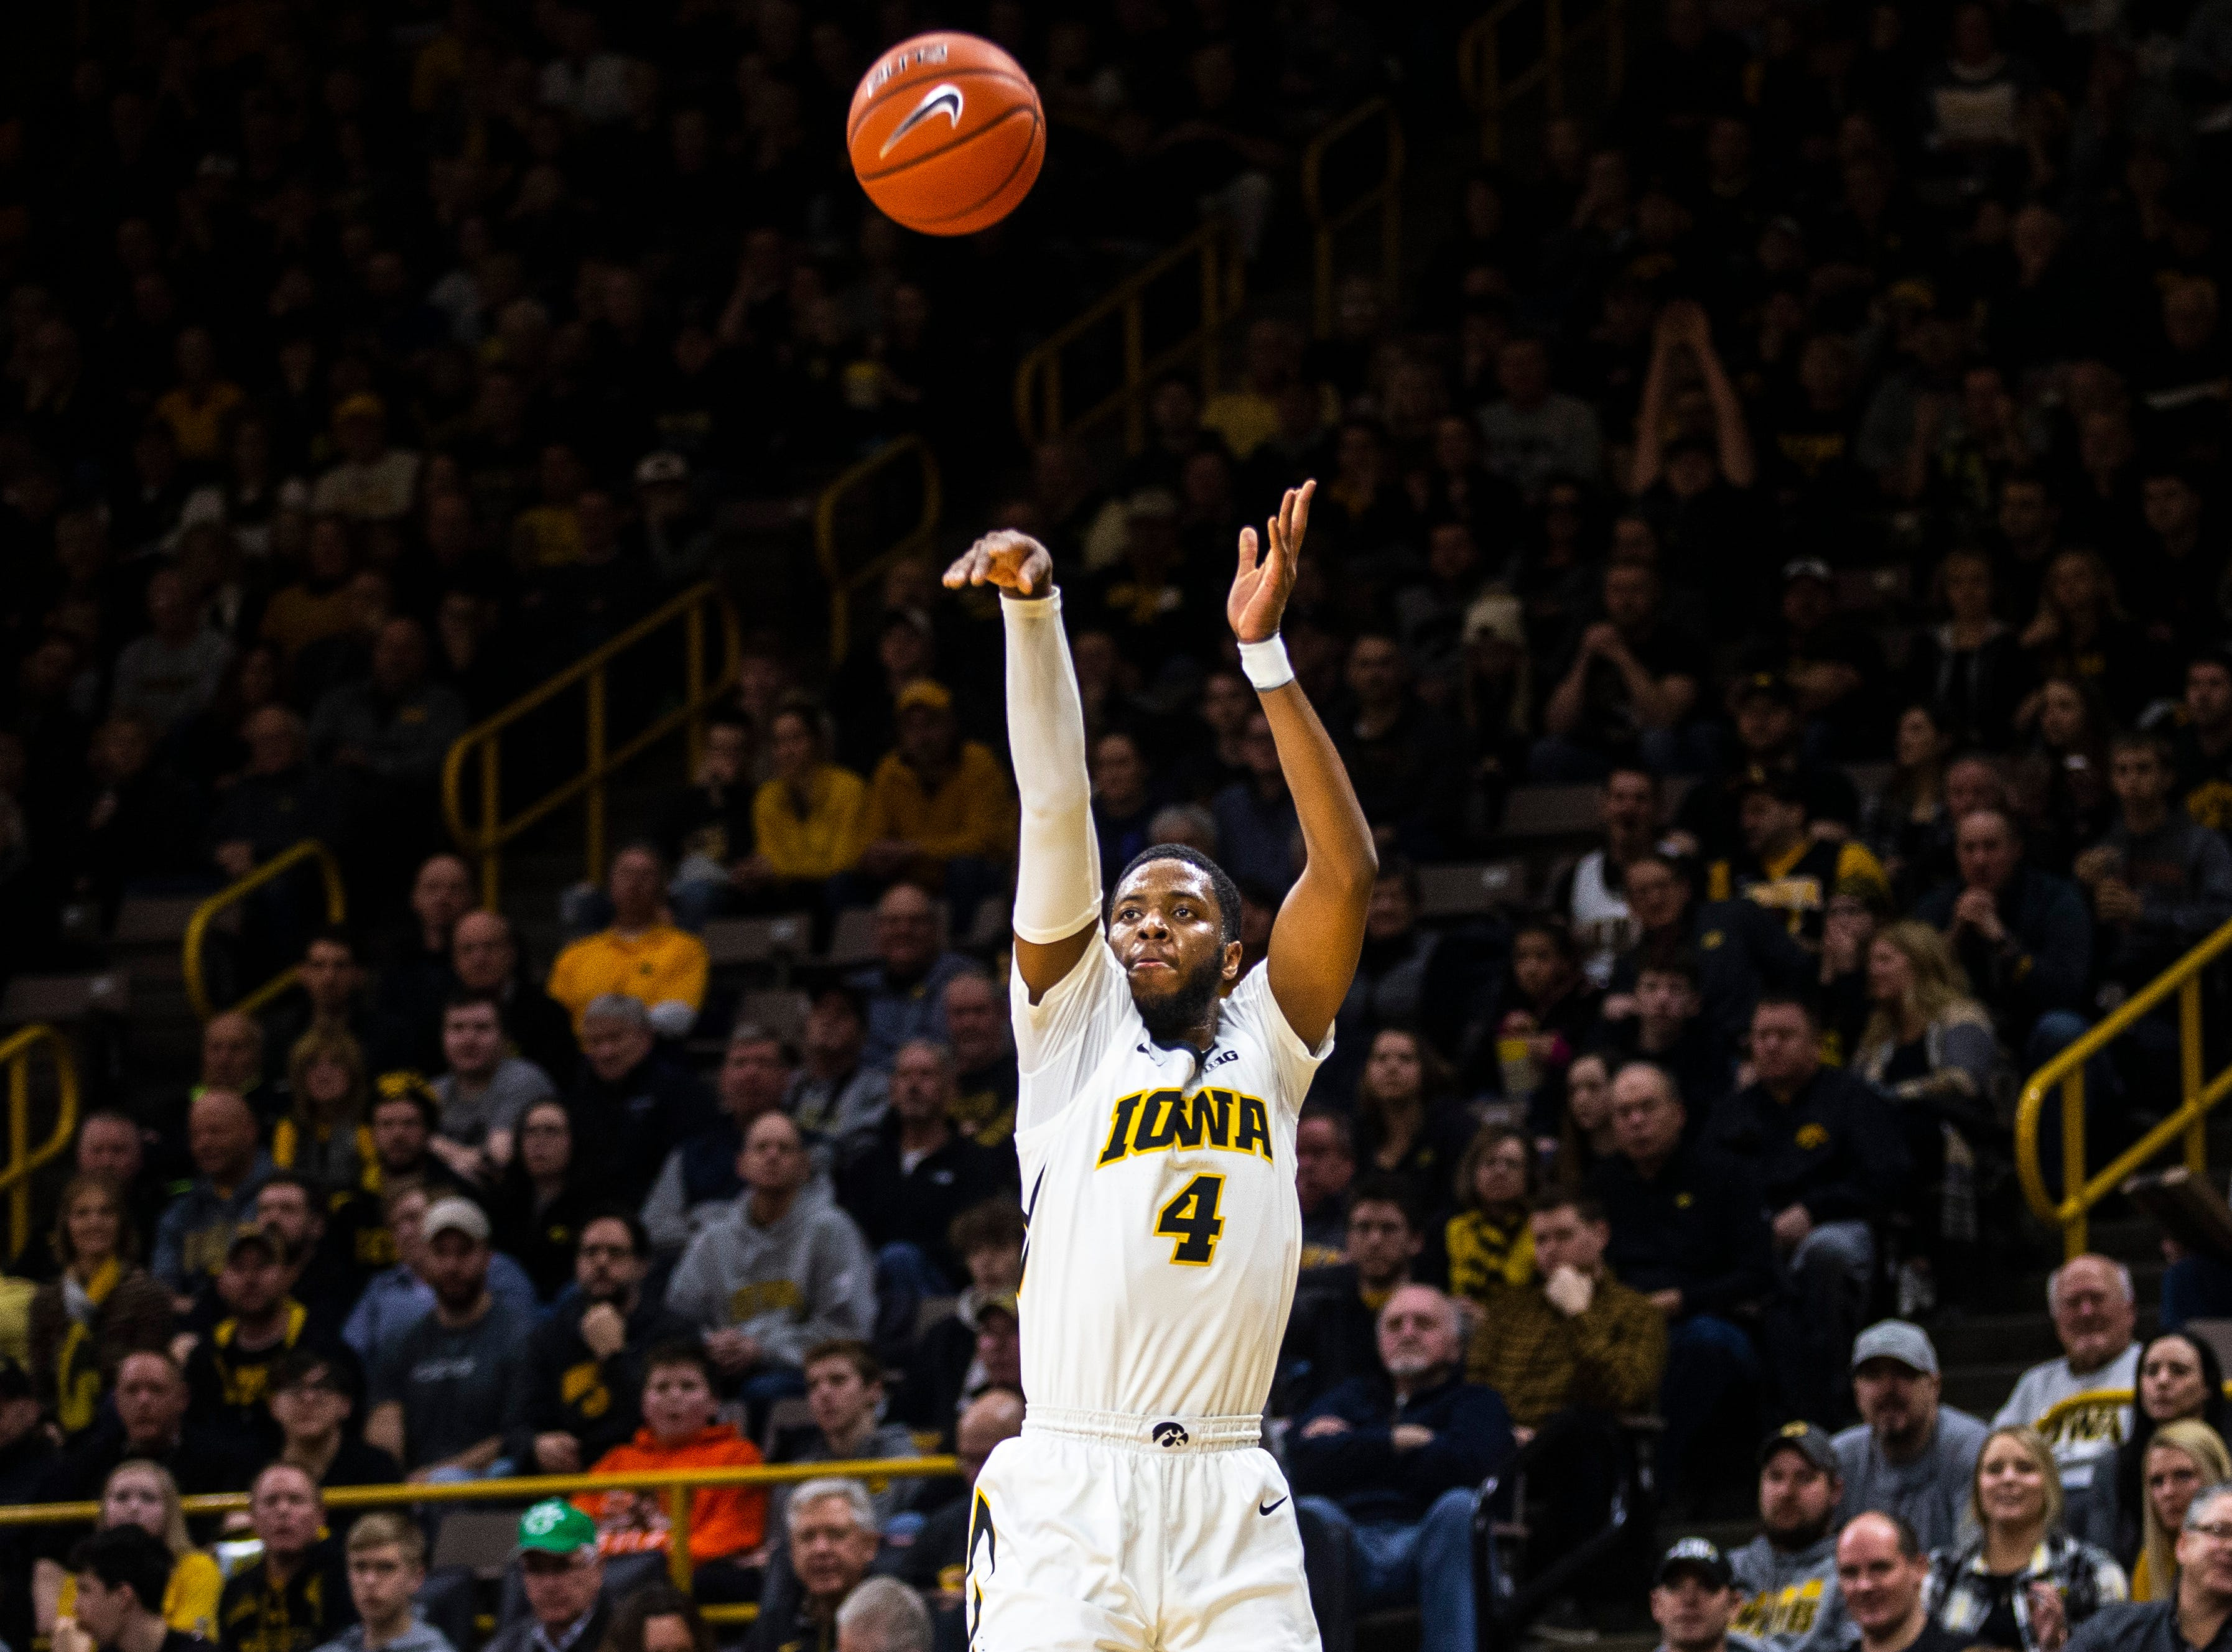 Iowa guard Isaiah Moss (4) shoots a 3-point basket during a NCAA Big Ten Conference men's basketball game on Sunday, Feb. 10, 2019 at Carver-Hawkeye Arena in Iowa City, Iowa.